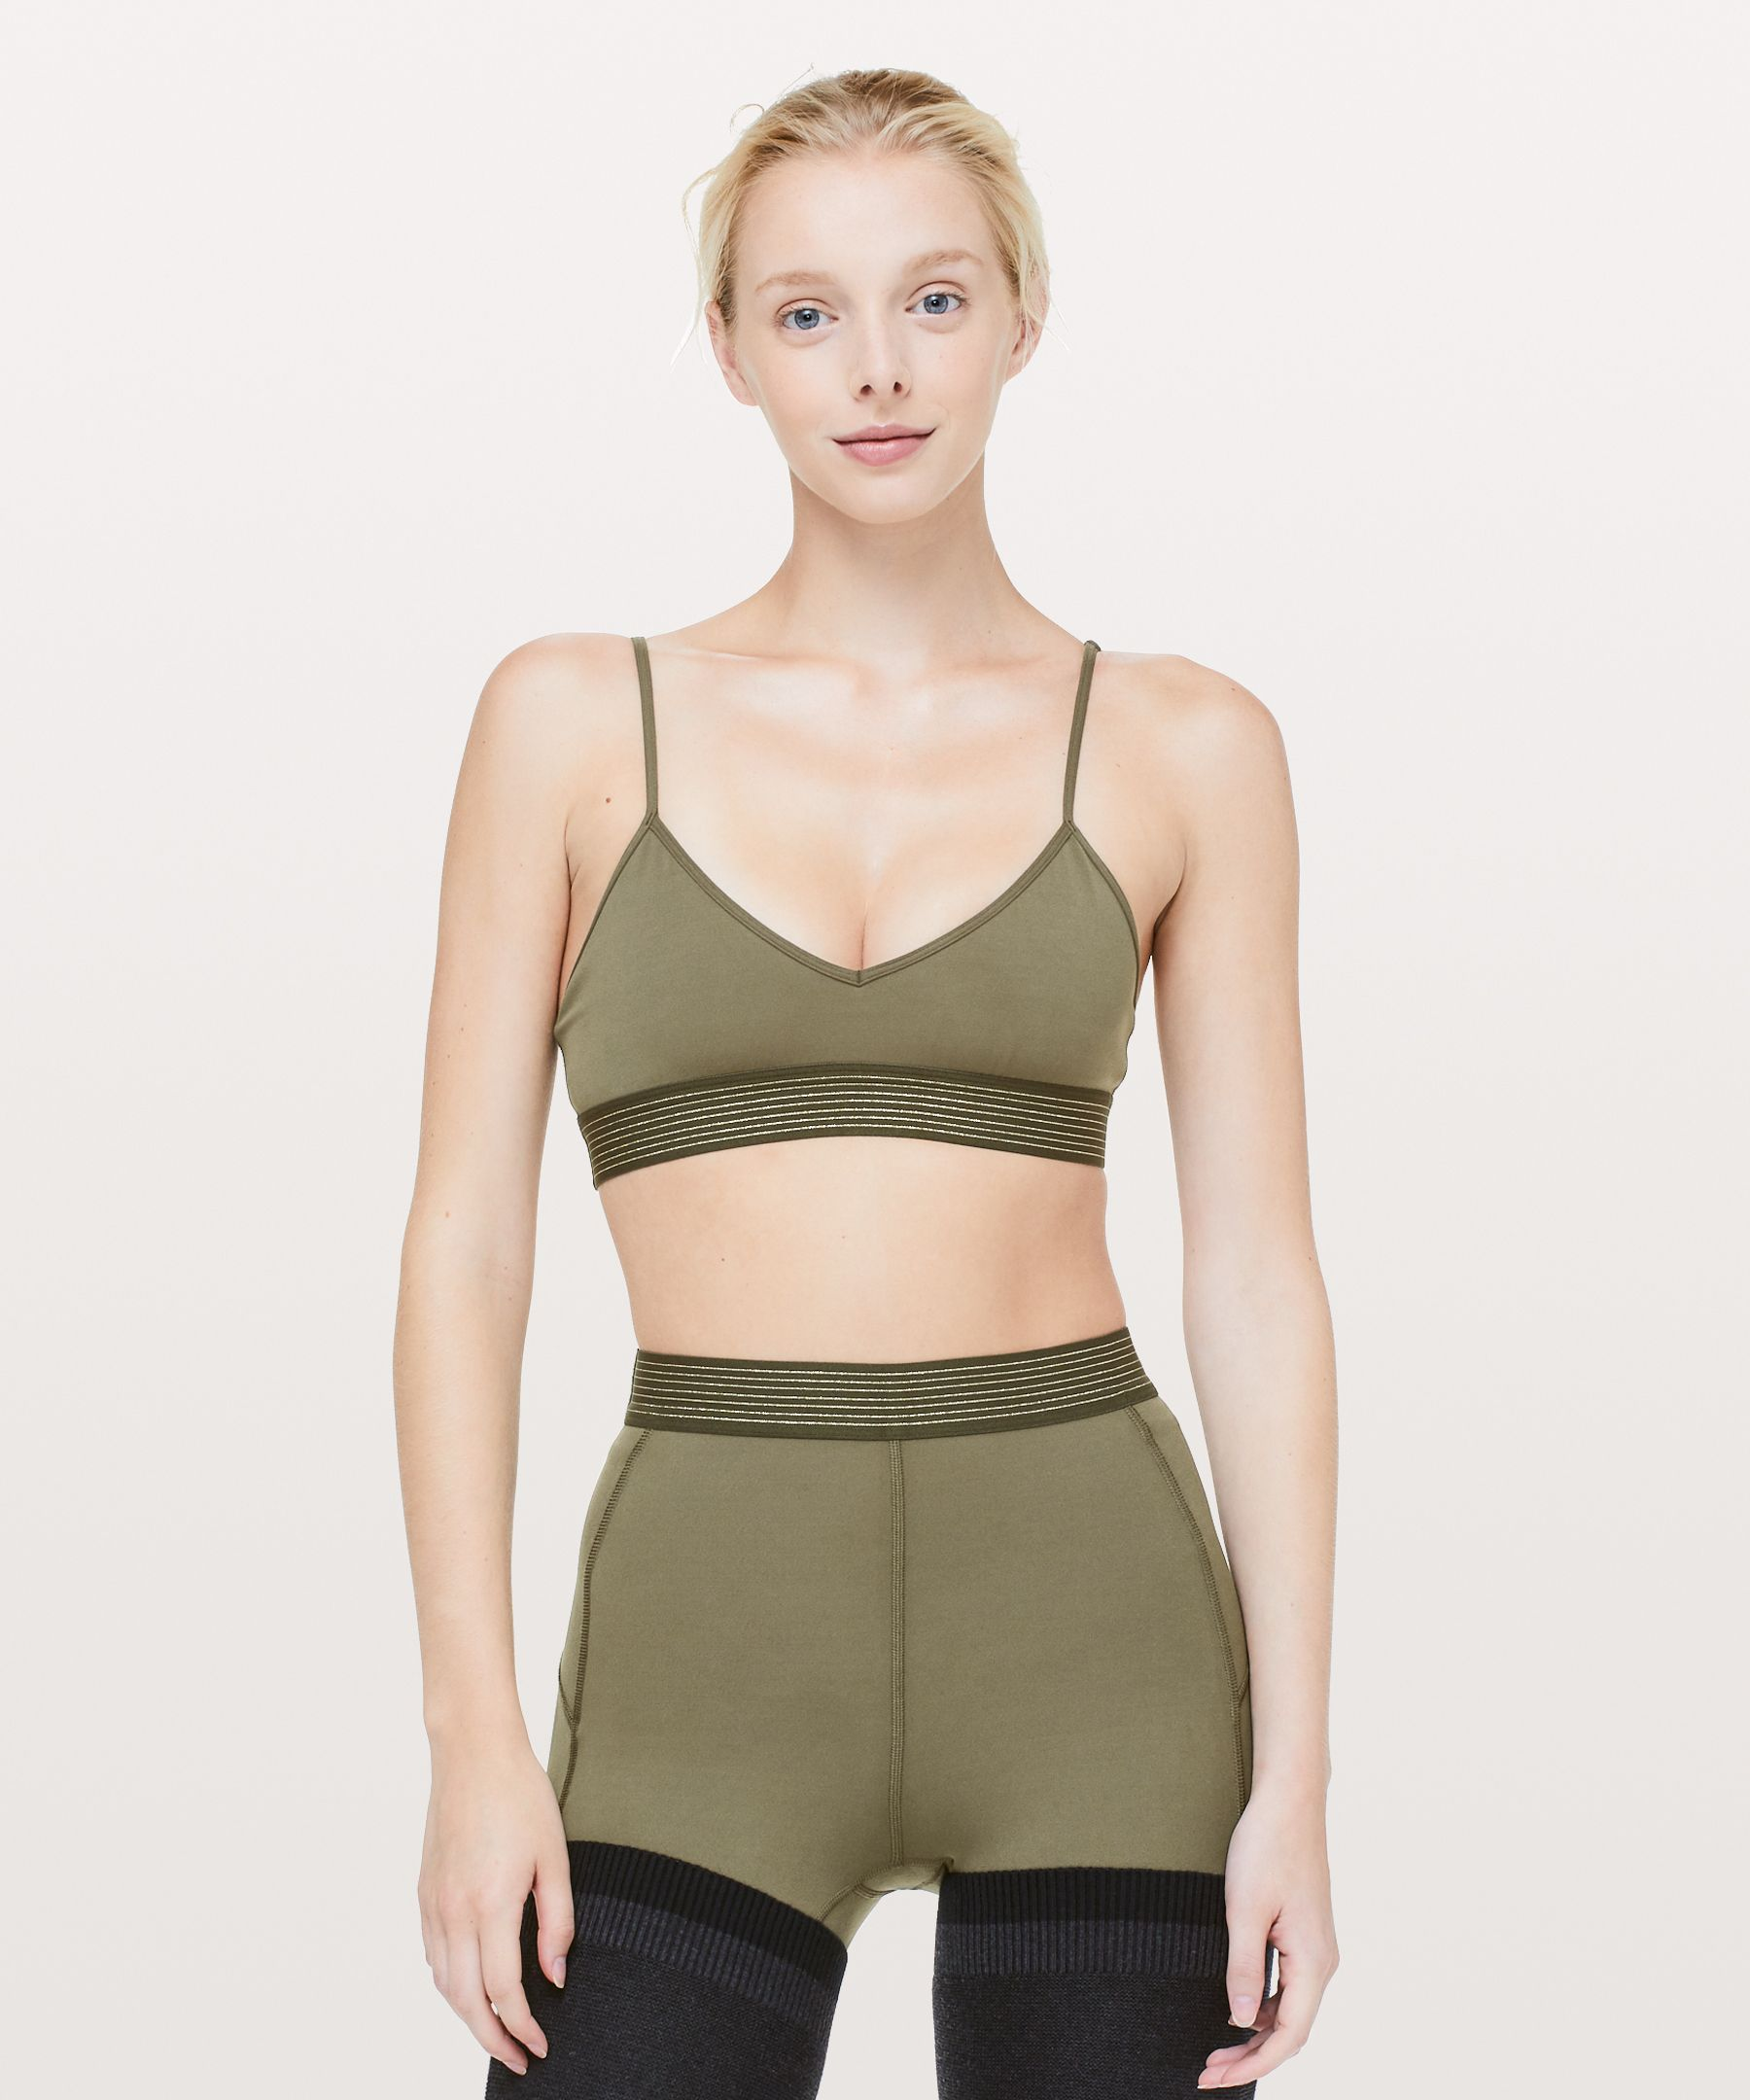 Principal Dancer Golden Lining Bralette by Lululemon